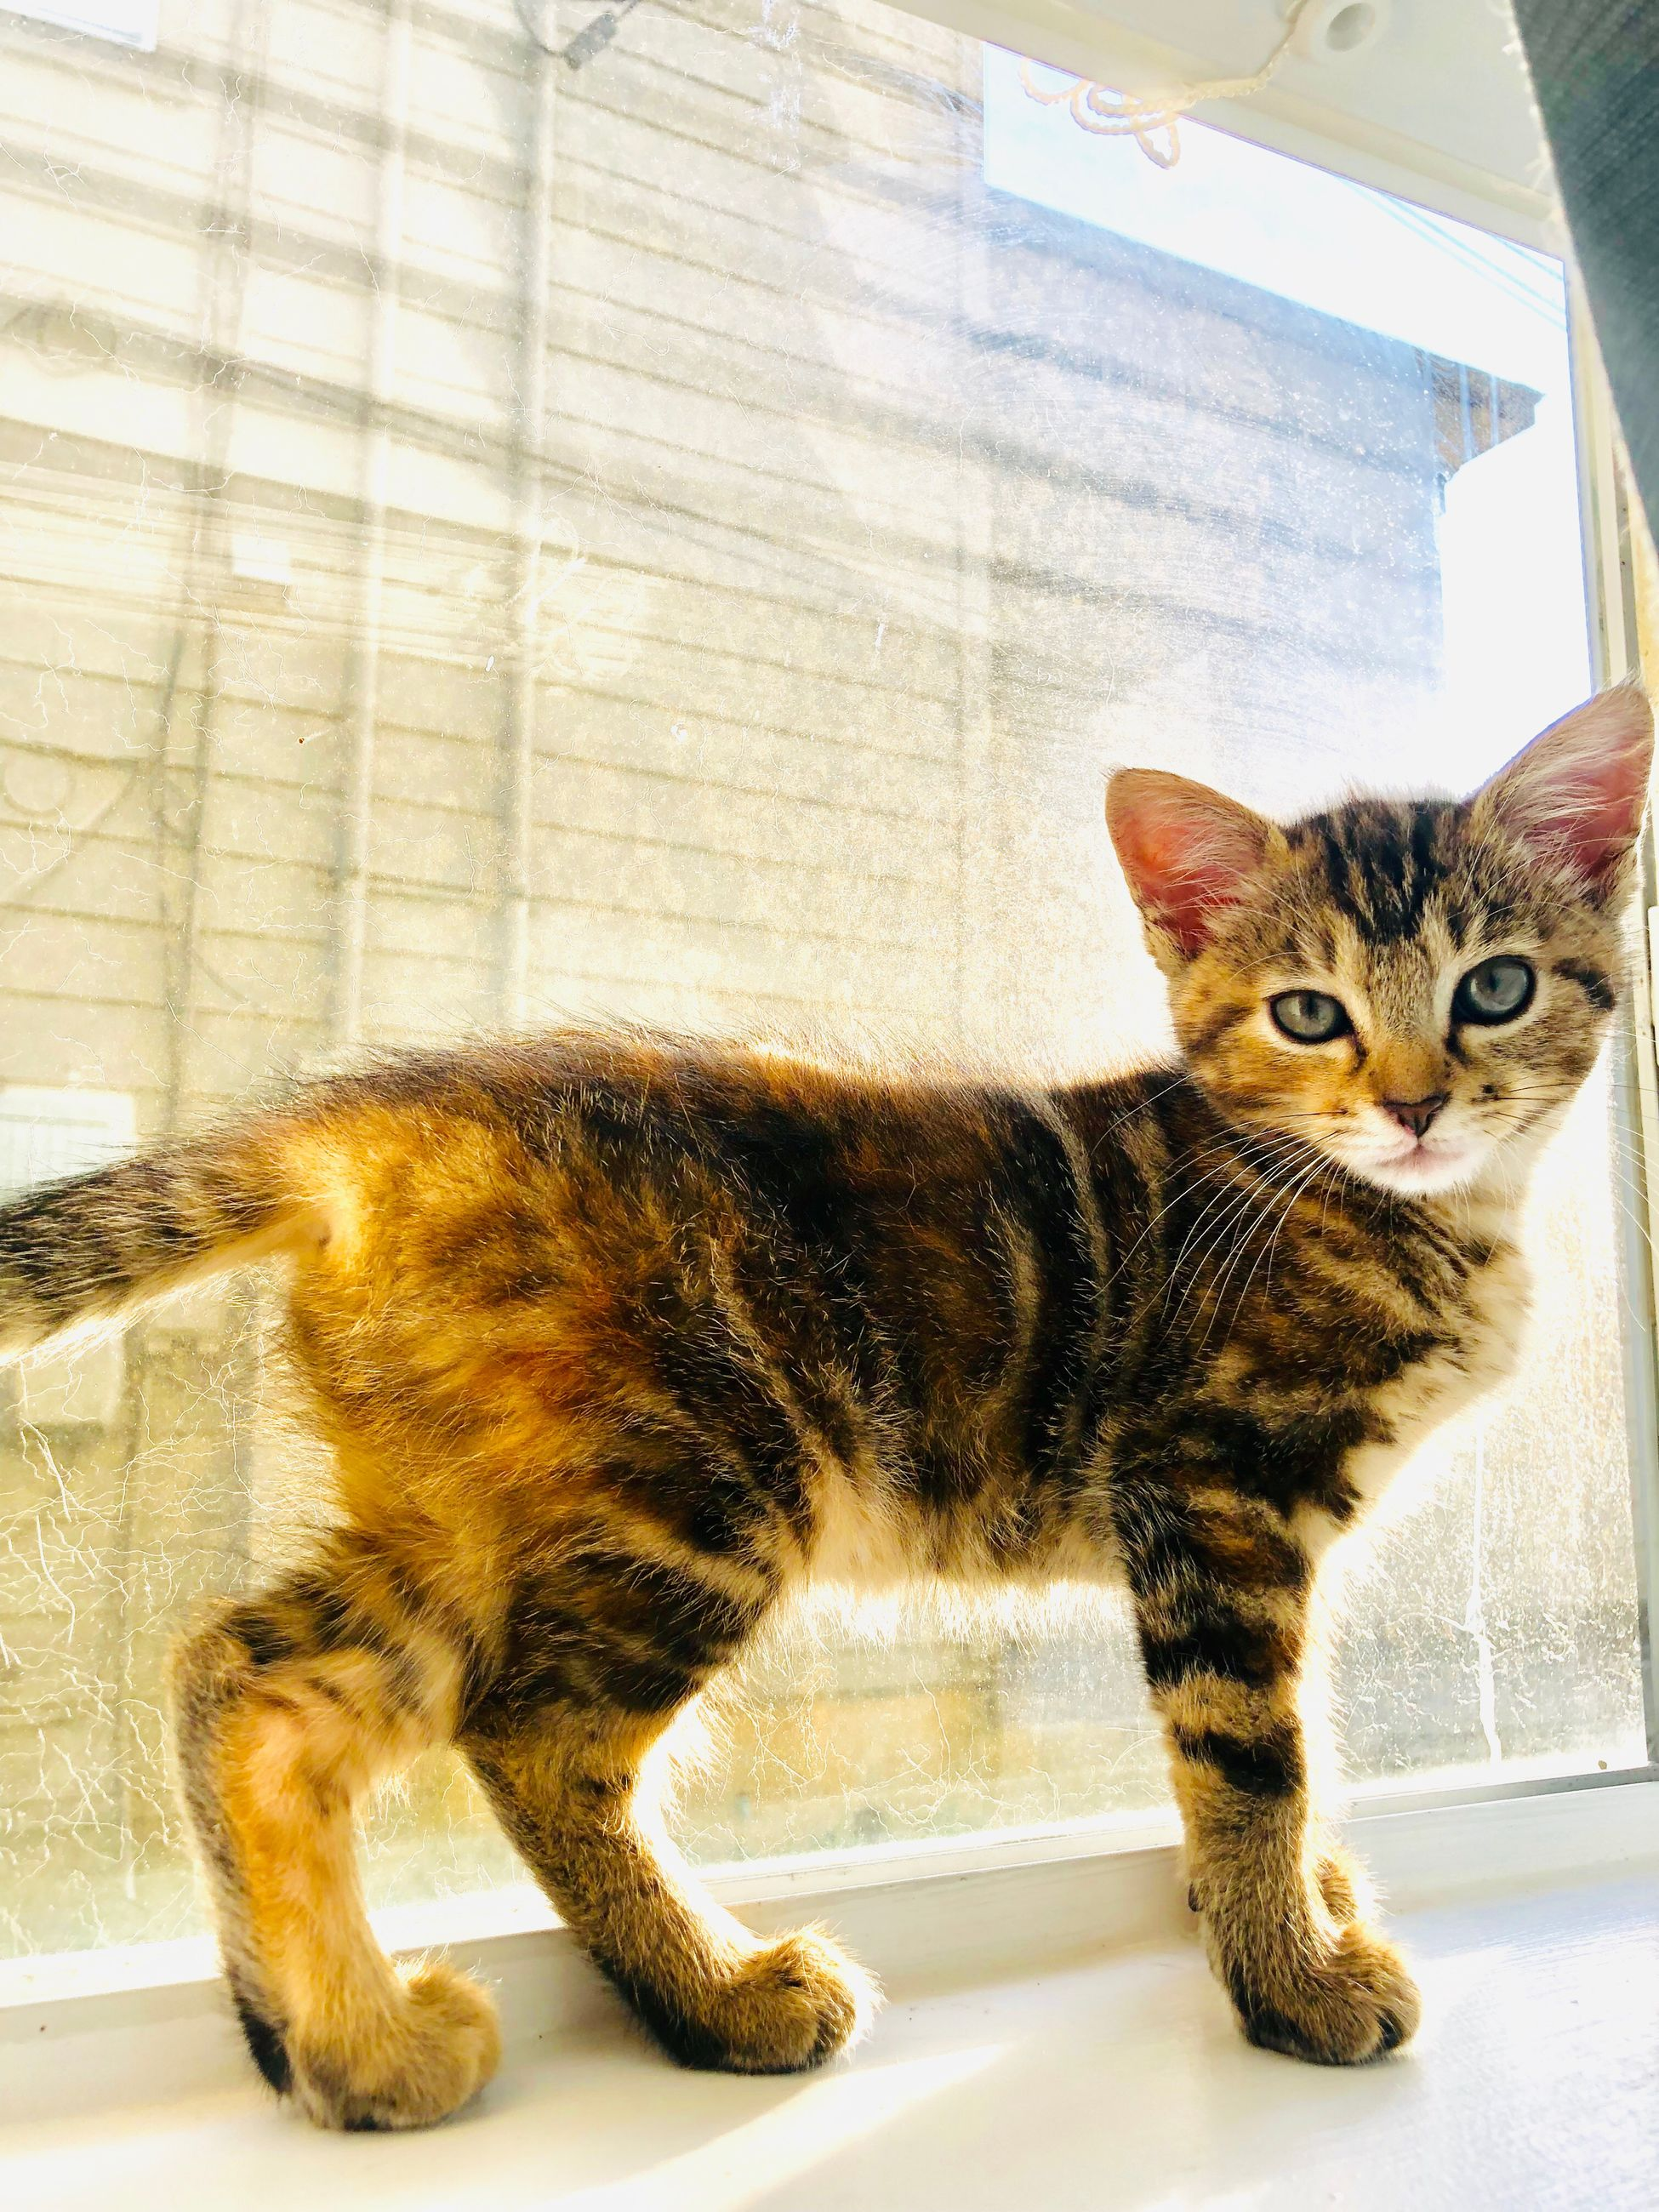 pets, mammal, domestic, domestic animals, cat, feline, one animal, indoors, domestic cat, portrait, no people, vertebrate, looking at camera, window, close-up, full length, day, whisker, tabby